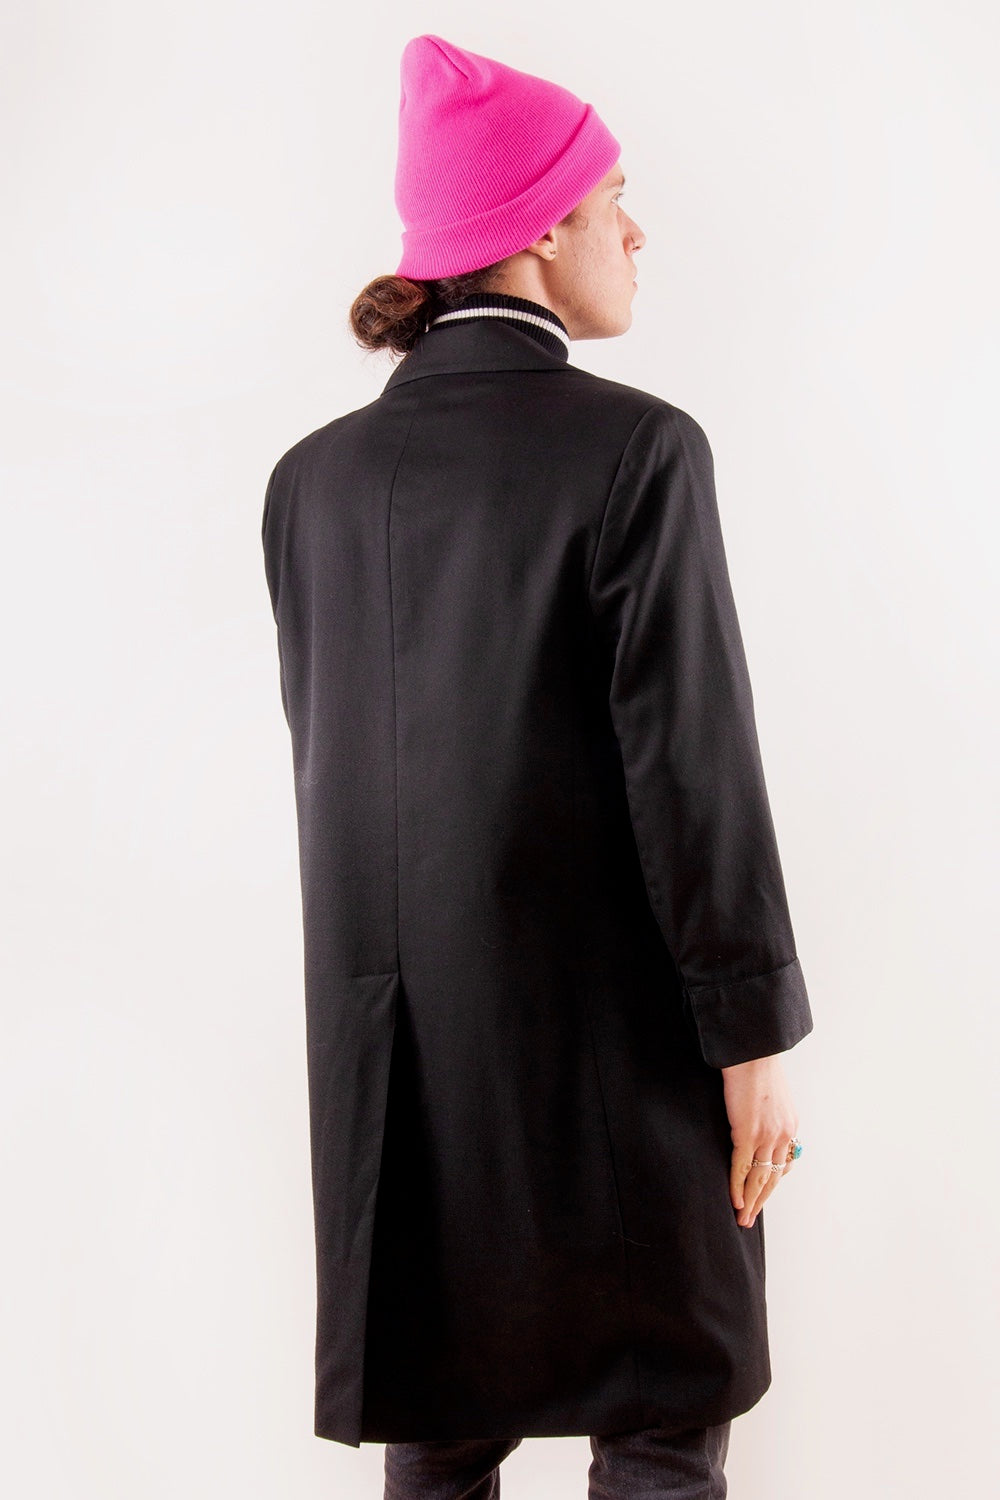 Vintage Wool Duster Coat in black